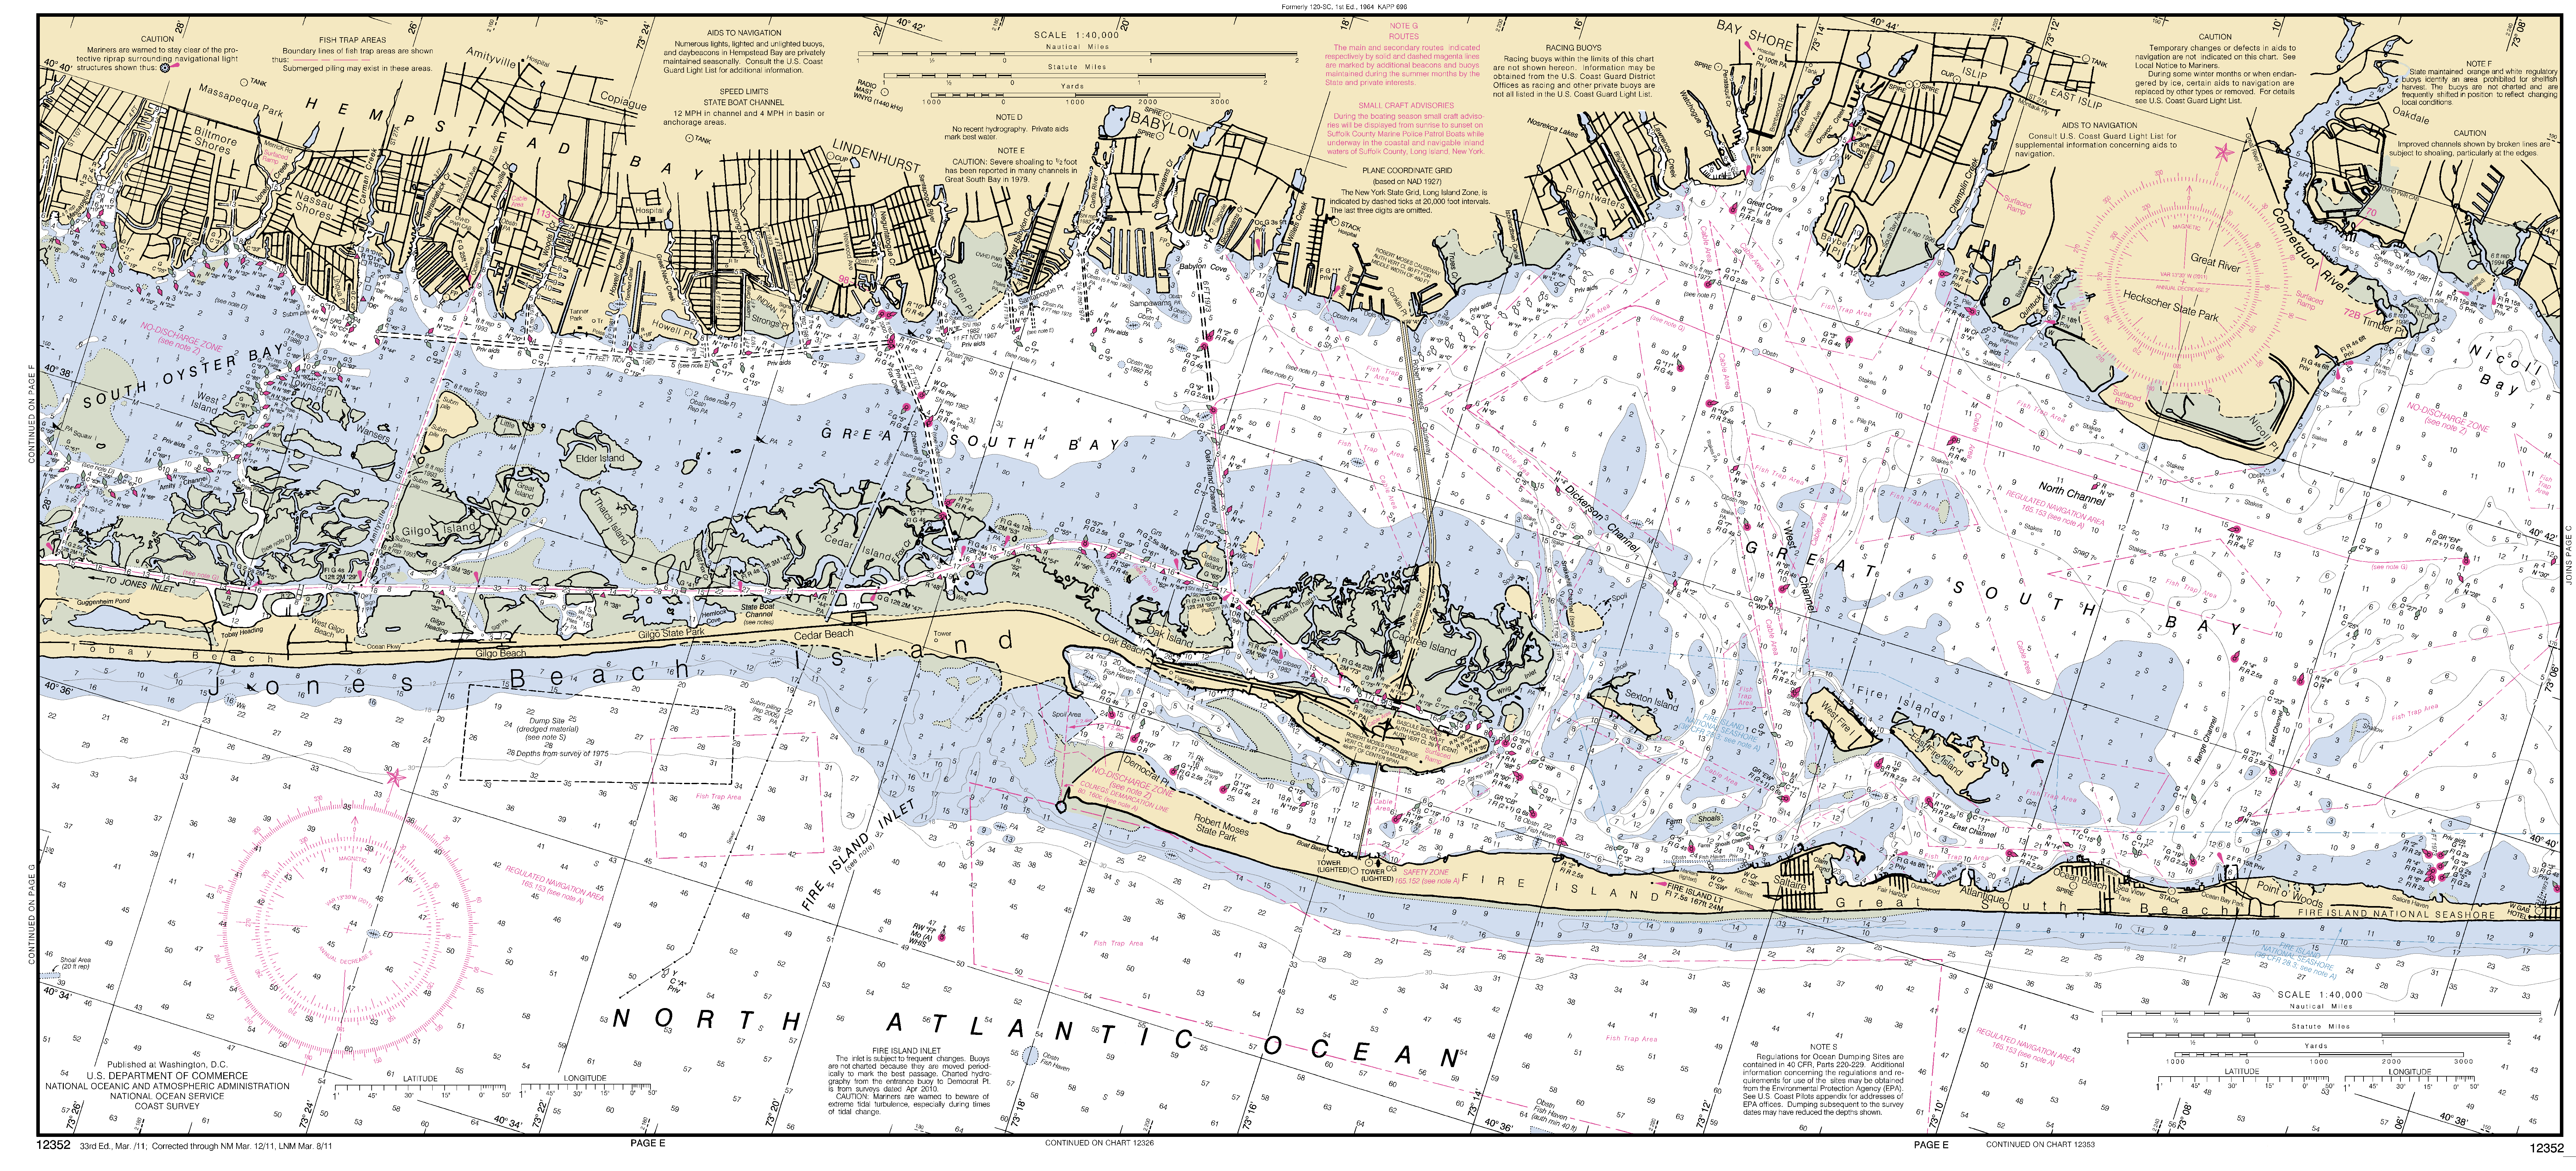 nh maps with 12352 3 South Oyster Bay To Great South Bay Long Island Ny on County Map likewise 11951 together with Nh Errol additionally Nh Eastwakefield as well Pune Map.